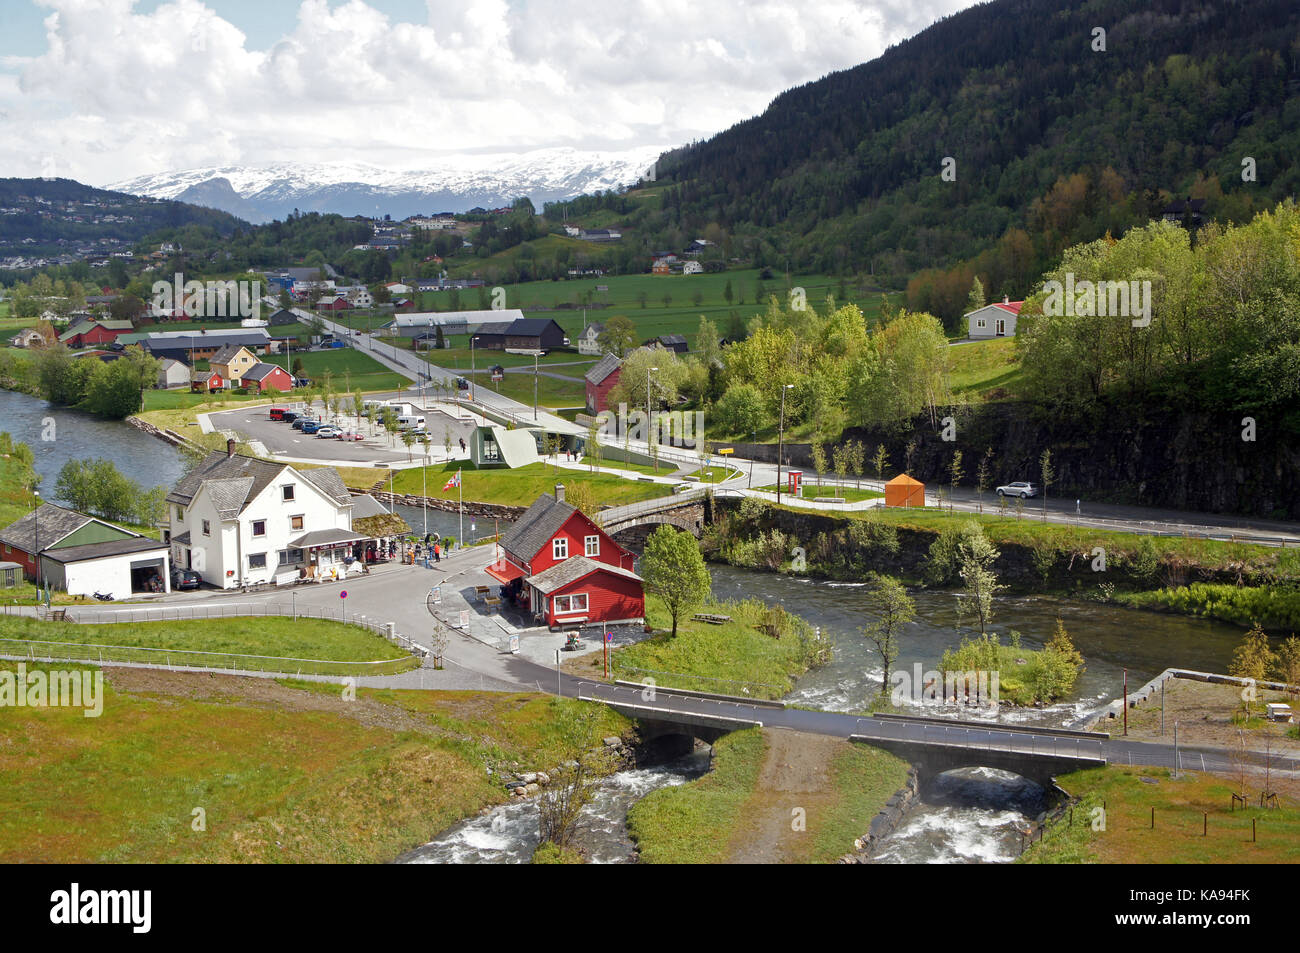 View from Steinsdalsfossen waterfall at the river of Steine, scenic landscape with cascade surounded by mountains - Stock Image